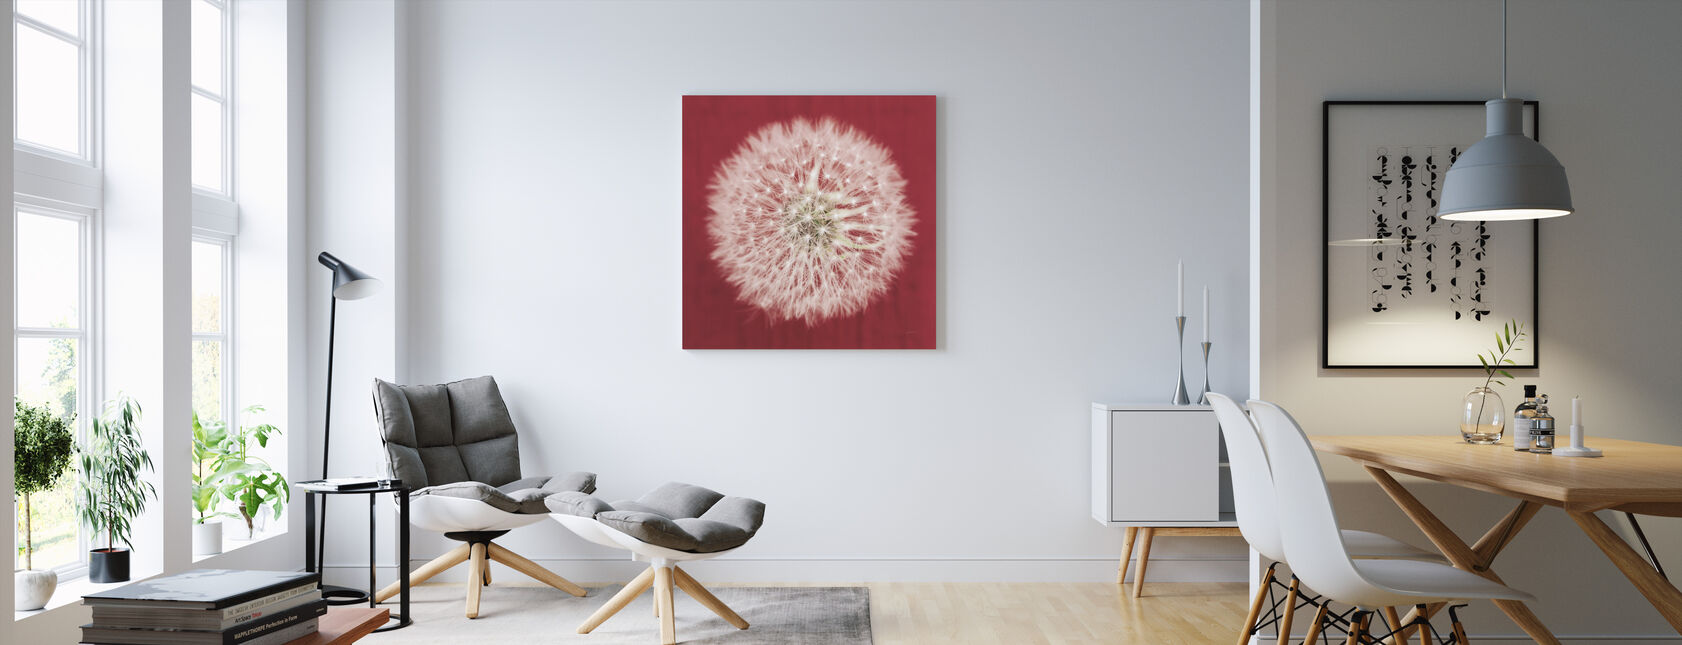 Dandelion on Red - Canvas print - Living Room